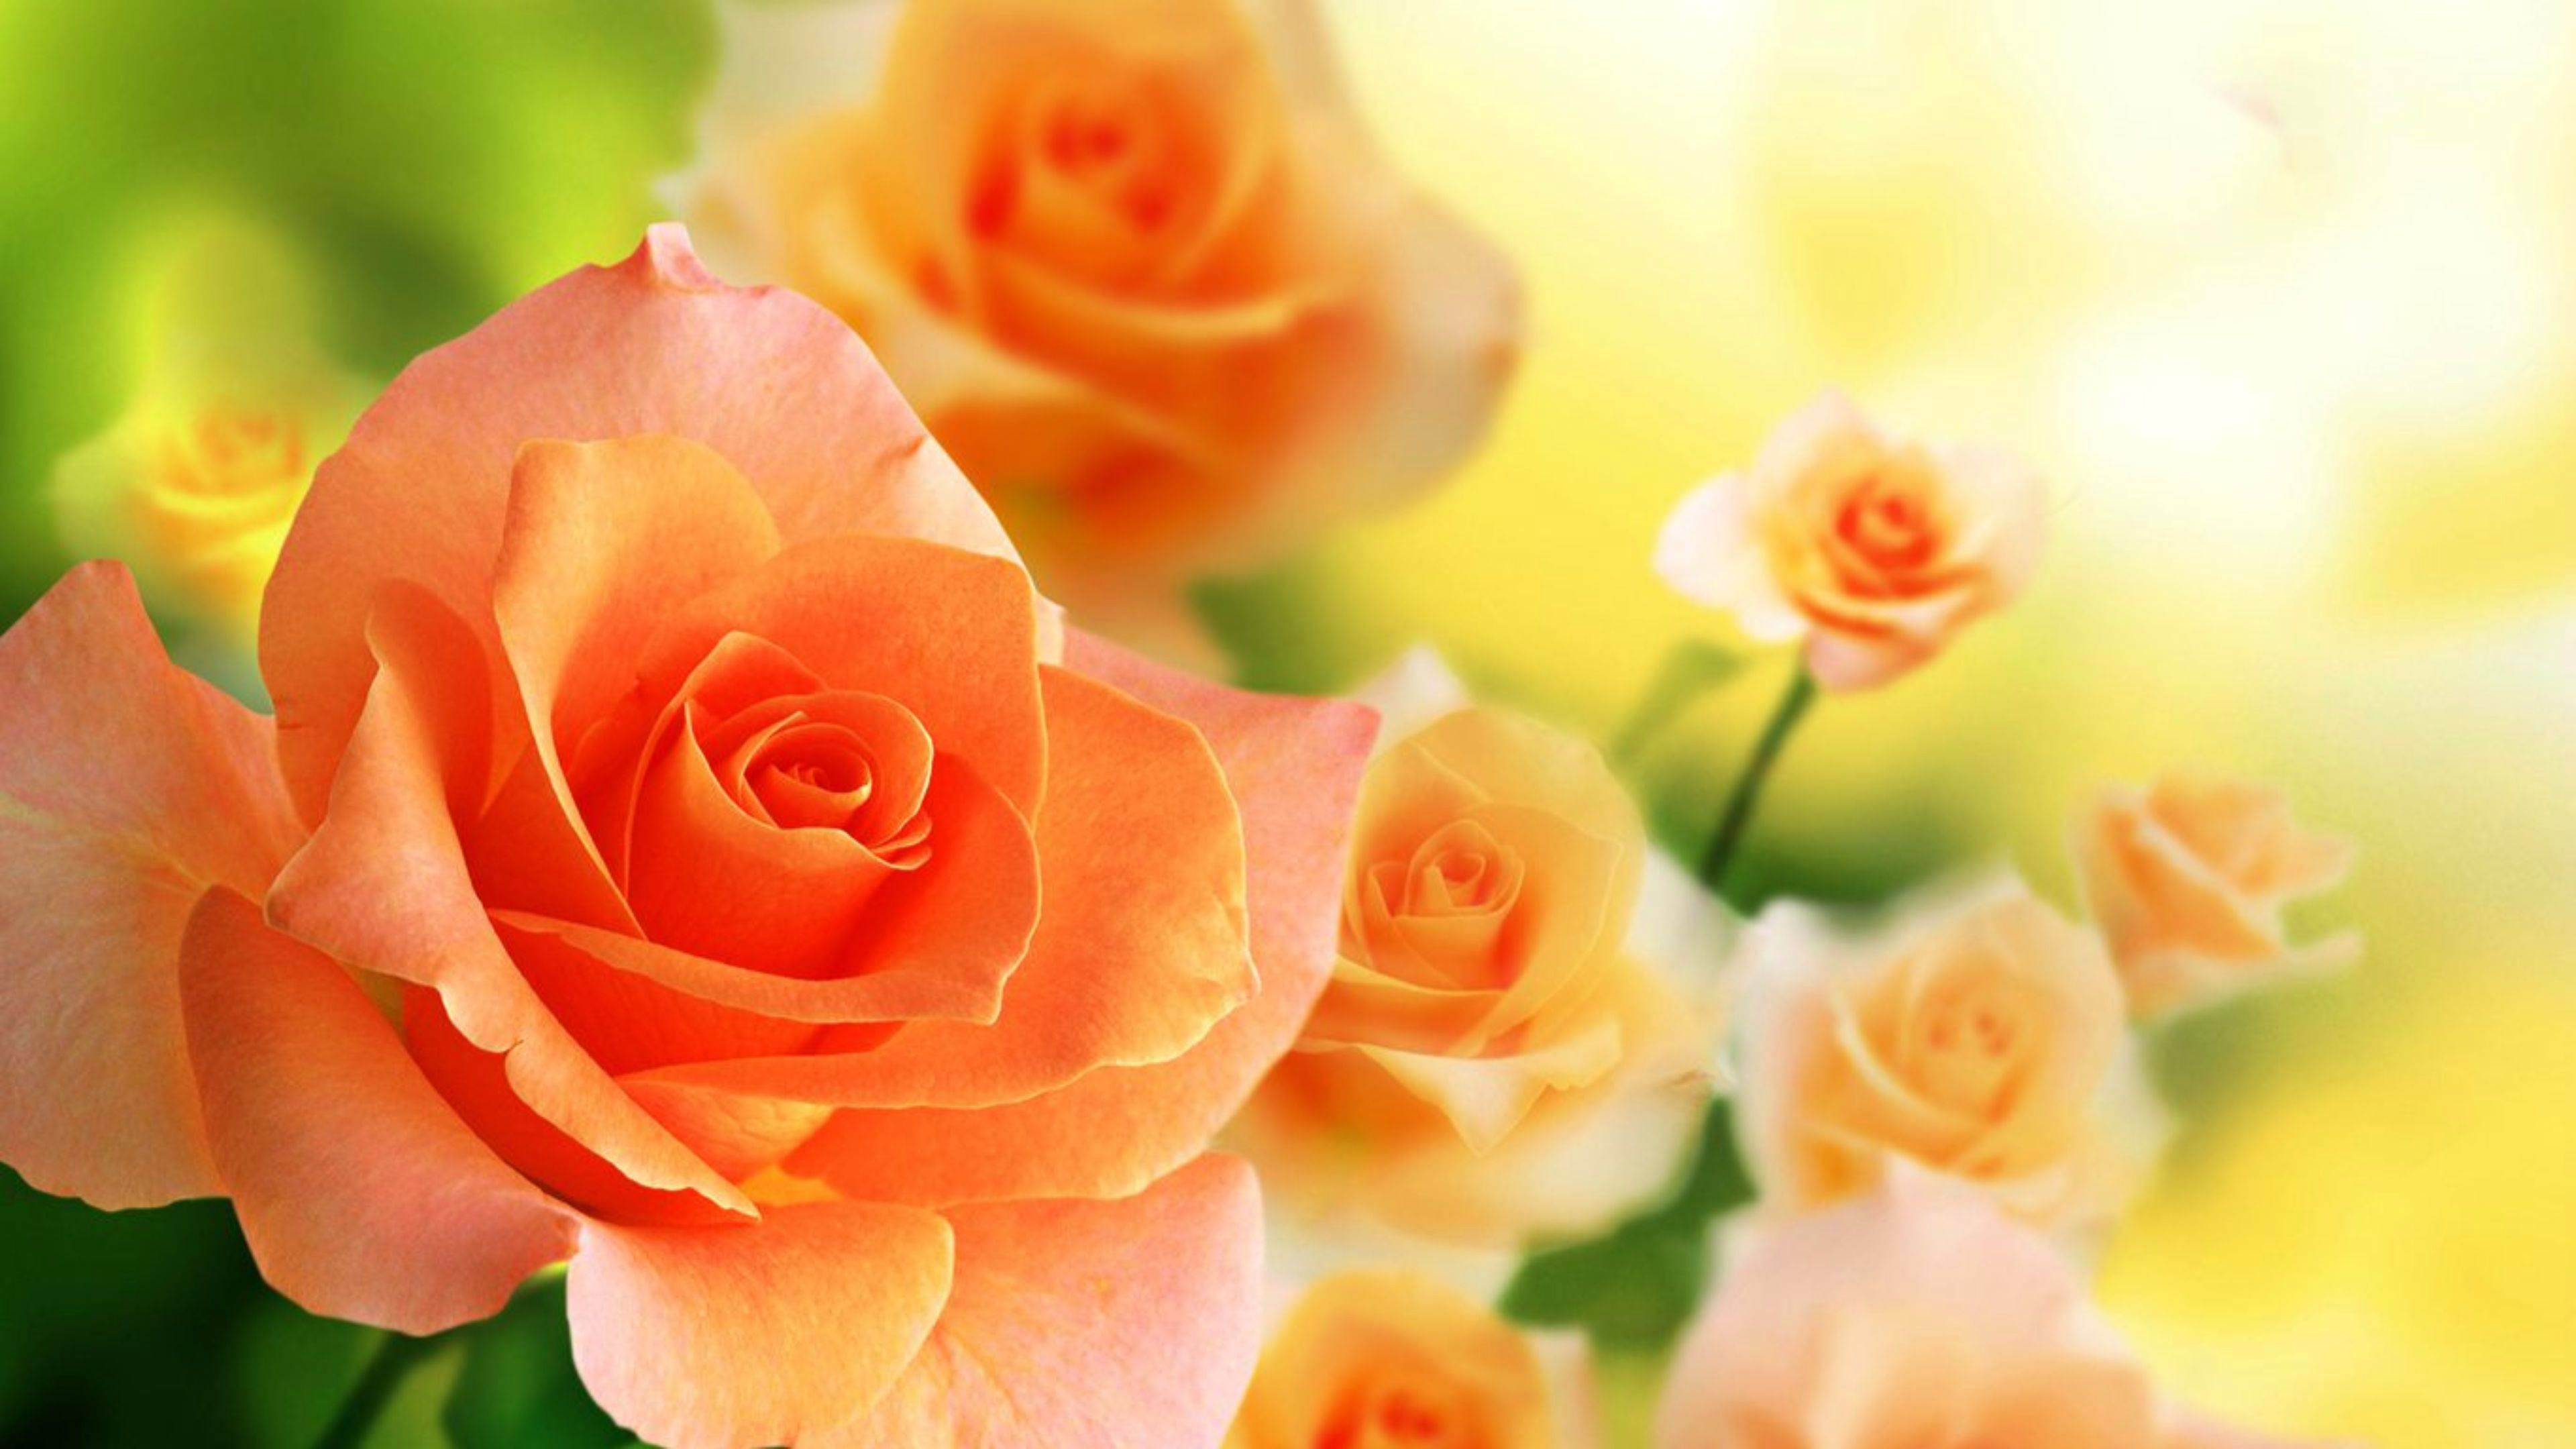 Orange rose wallpapers beautiful orange flowers pictures best wallpaper most beautiful orange rose in the world hd images with flower colourful high quality for pc full izmirmasajfo